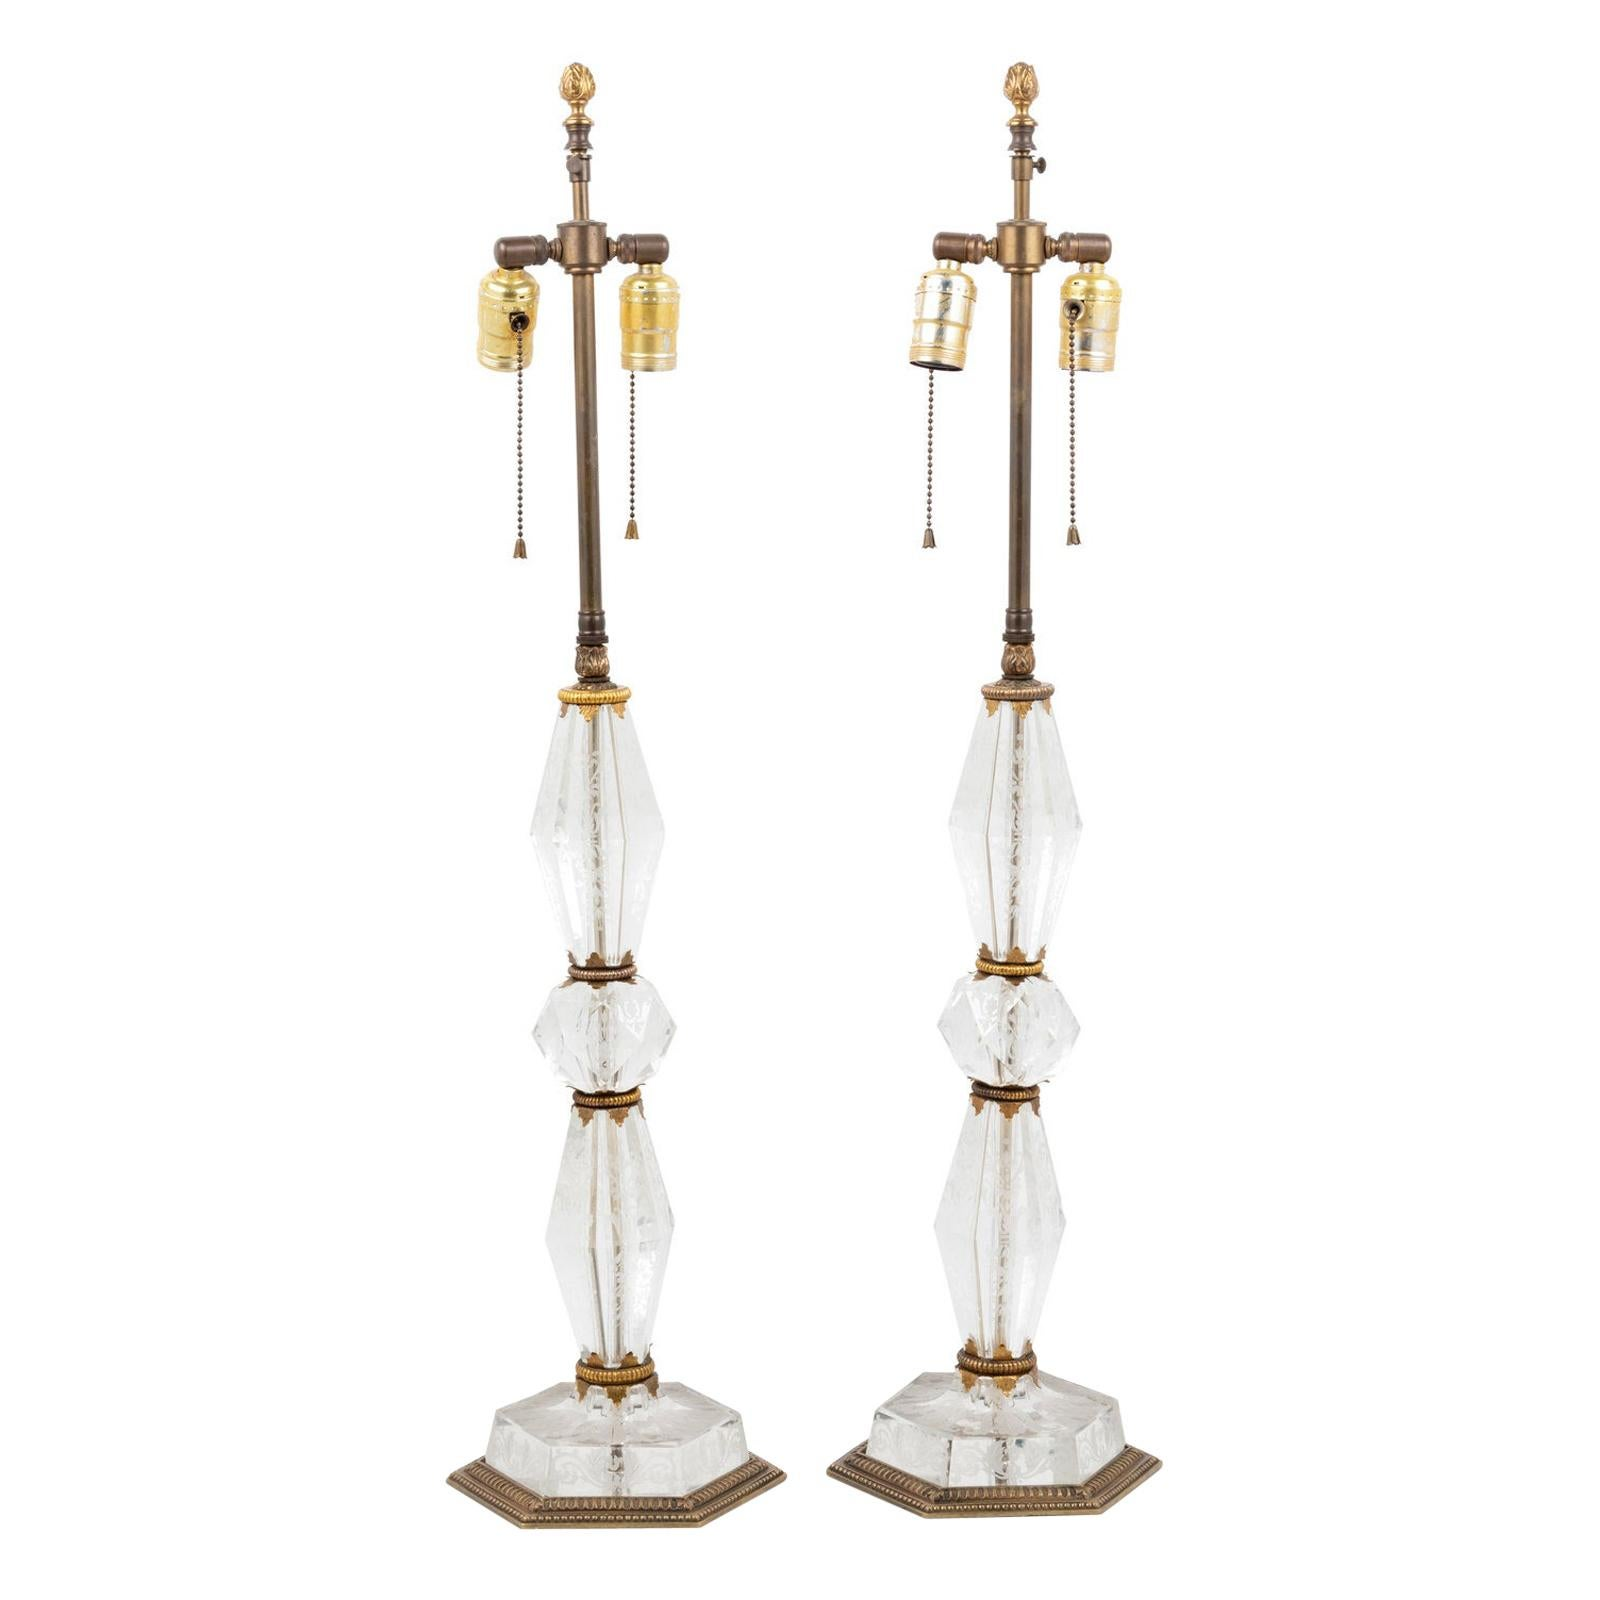 Pair Cut Glass Lamps with Etched Floral Decorations Attributed to E.F. Caldwell